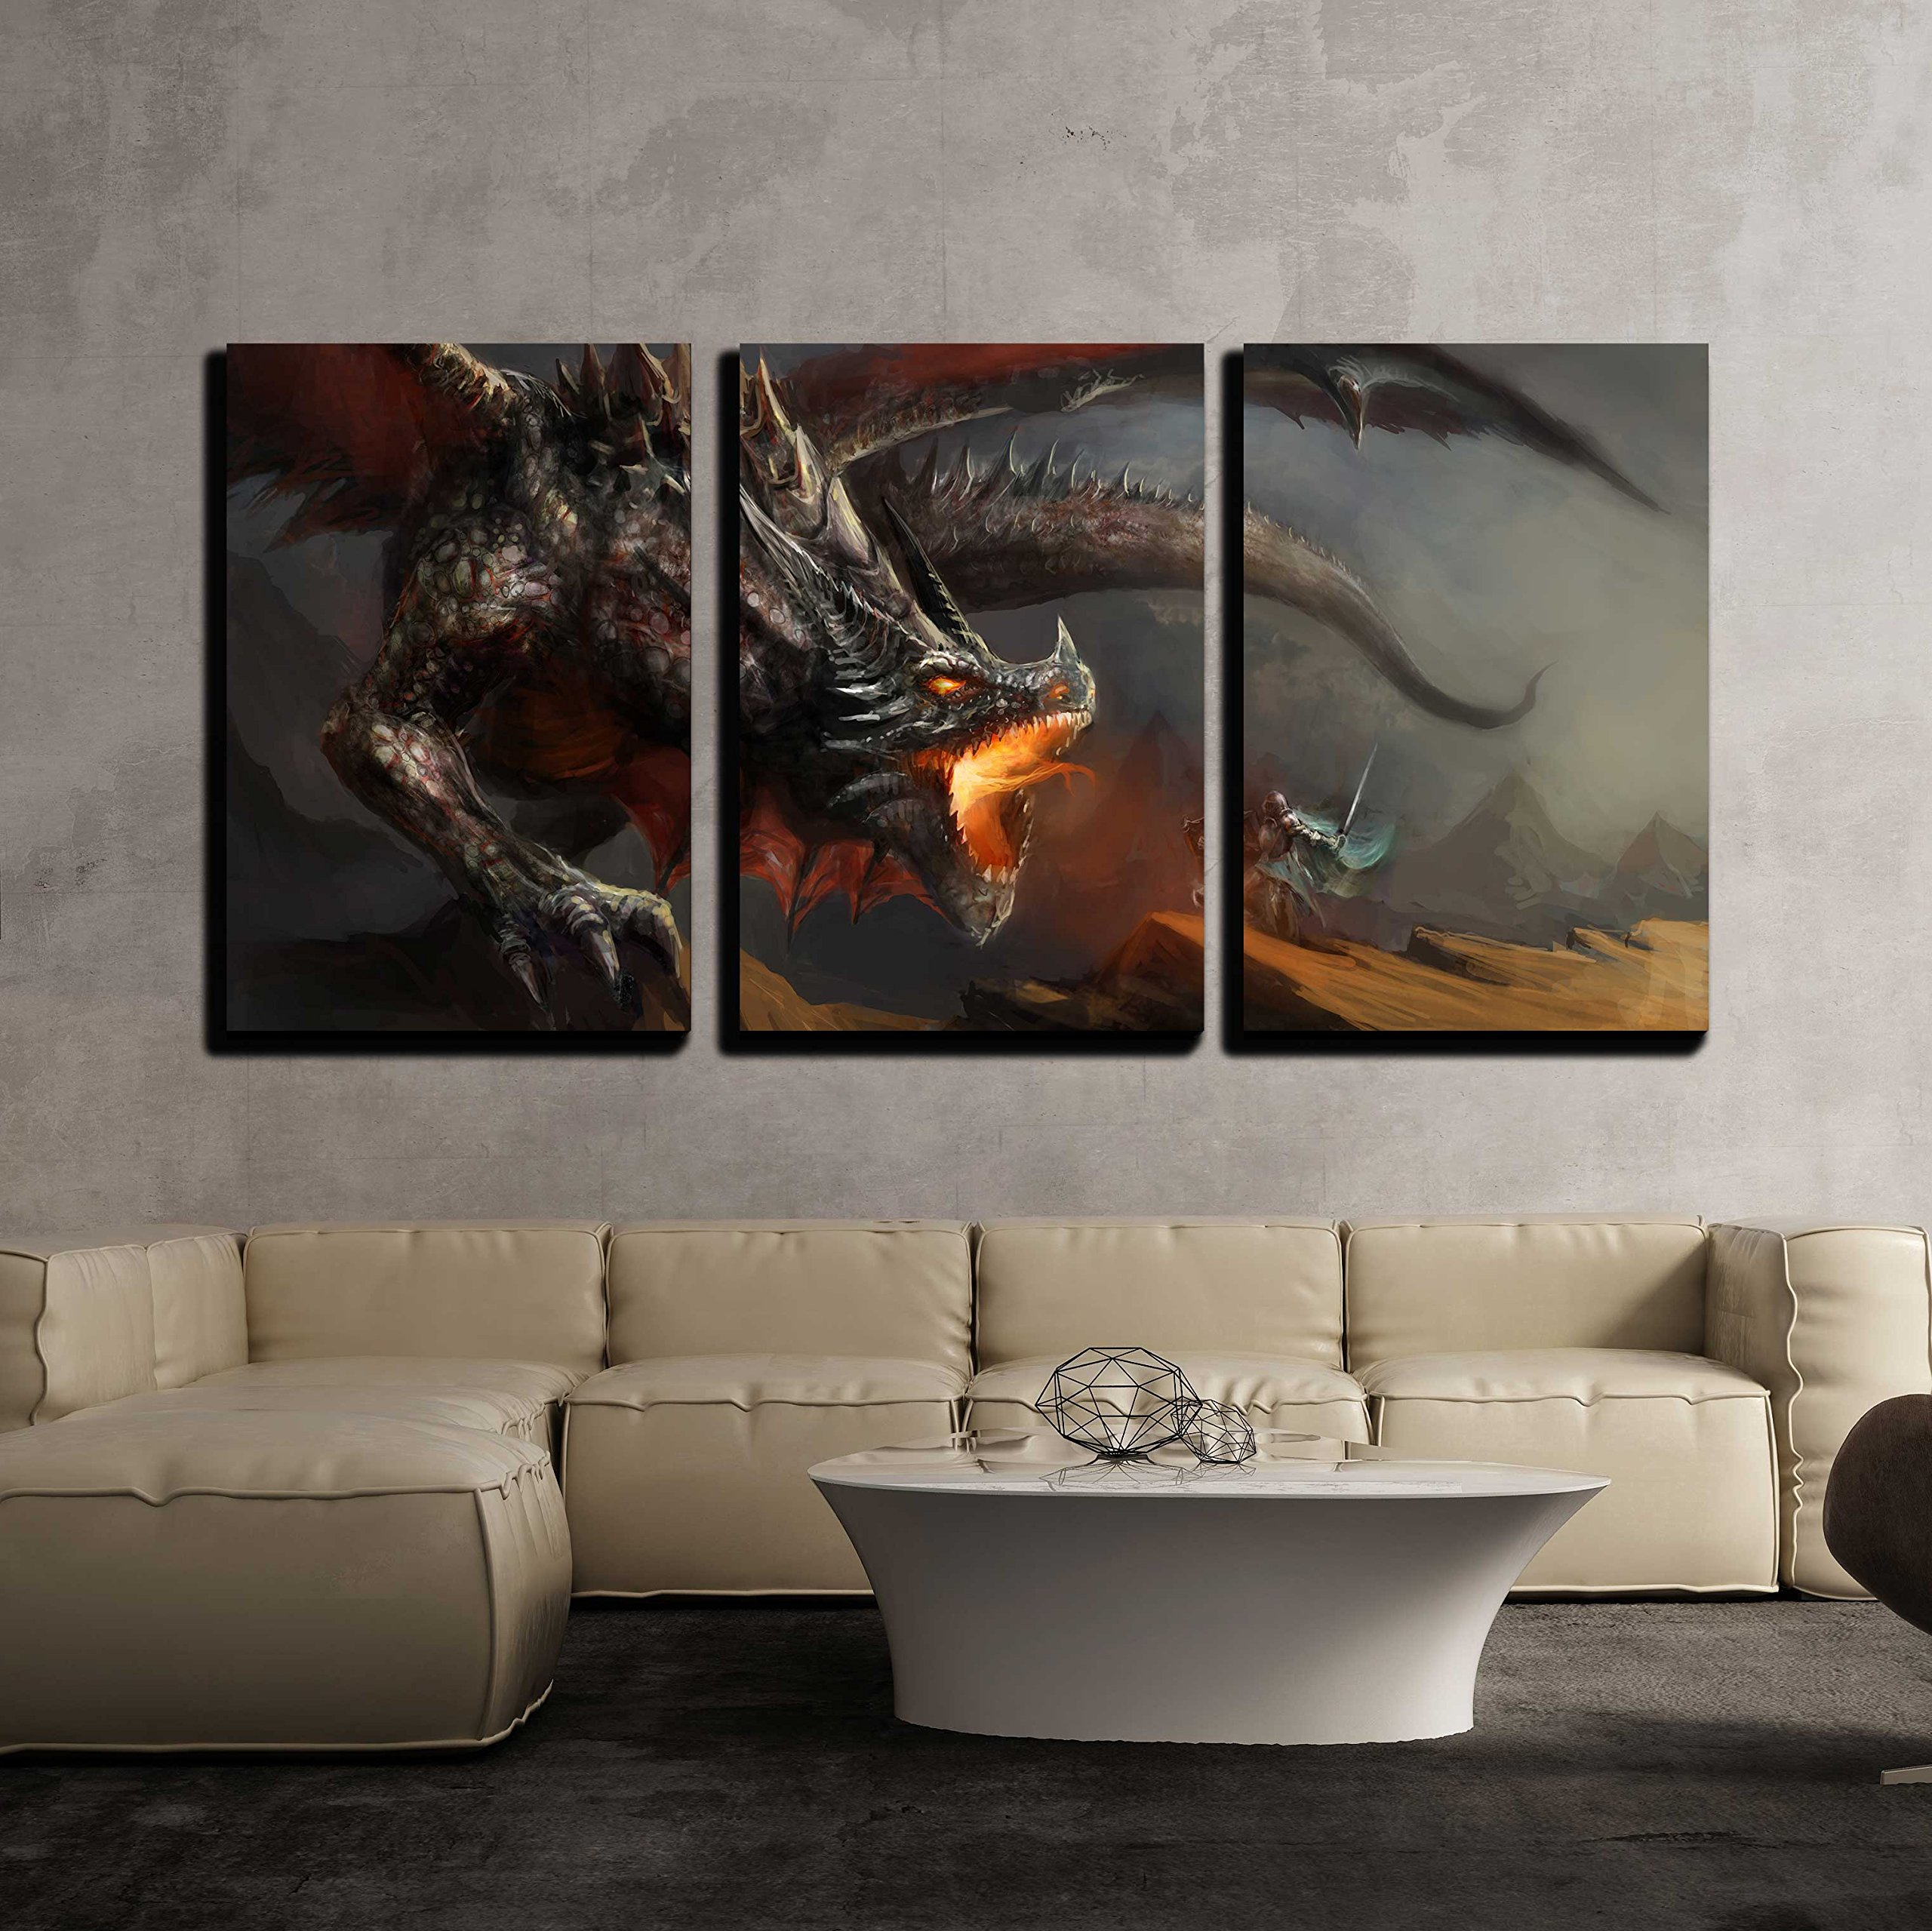 wall26 - 3 Piece Canvas Wall Art - Fantasy Scene Knight Fighting Dragon - Modern Home Decor Stretched and Framed Ready to Hang - 16''x24''x3 Panels by wall26